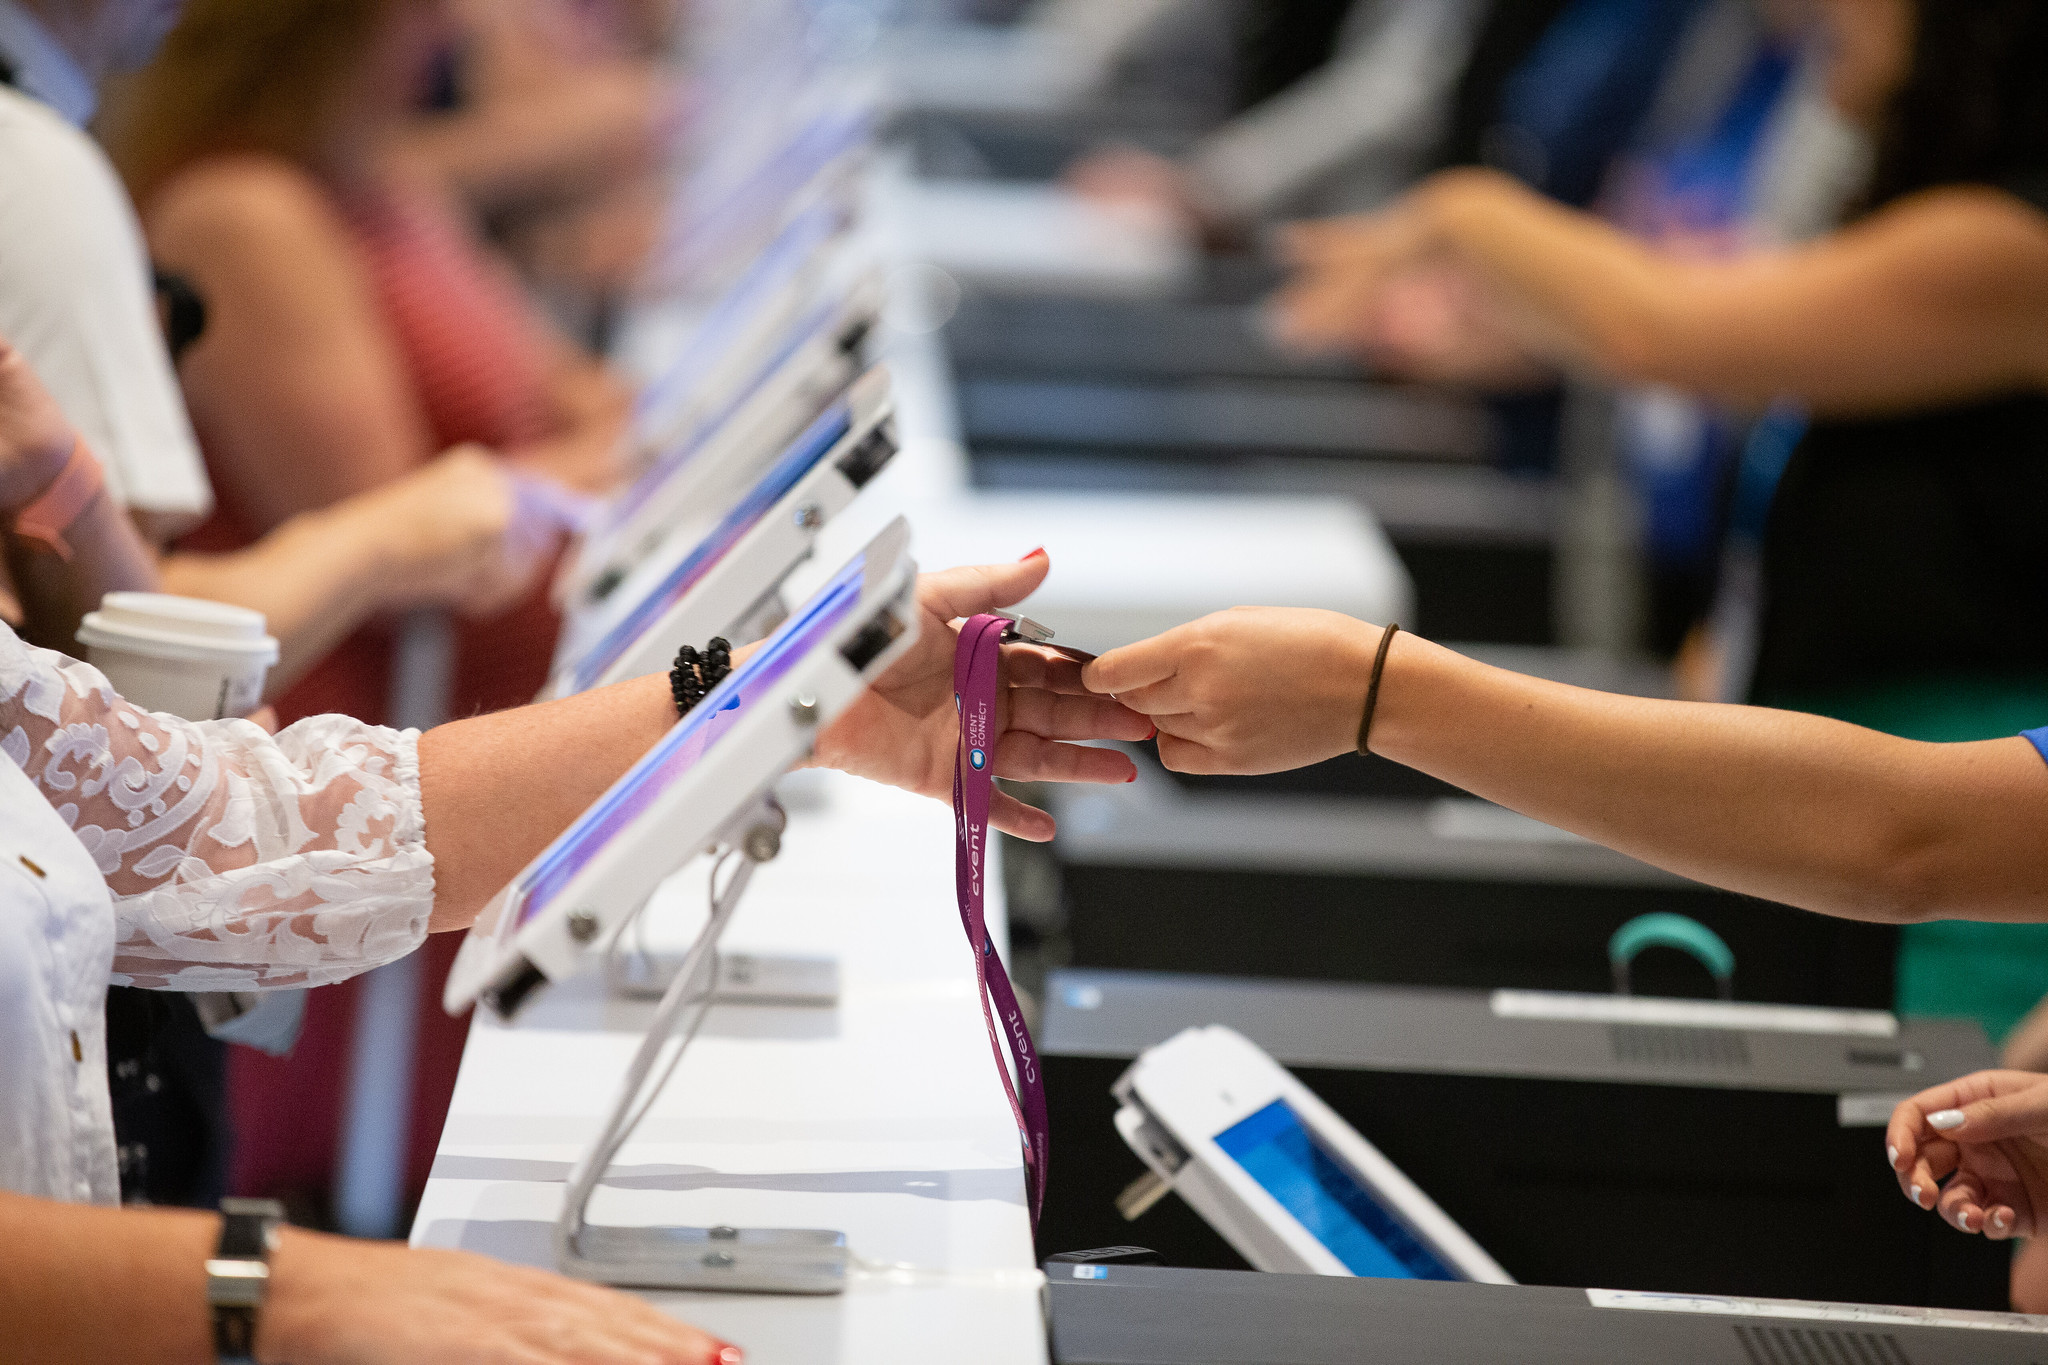 The rise of the event technologist, attendee satisfaction, and ROI